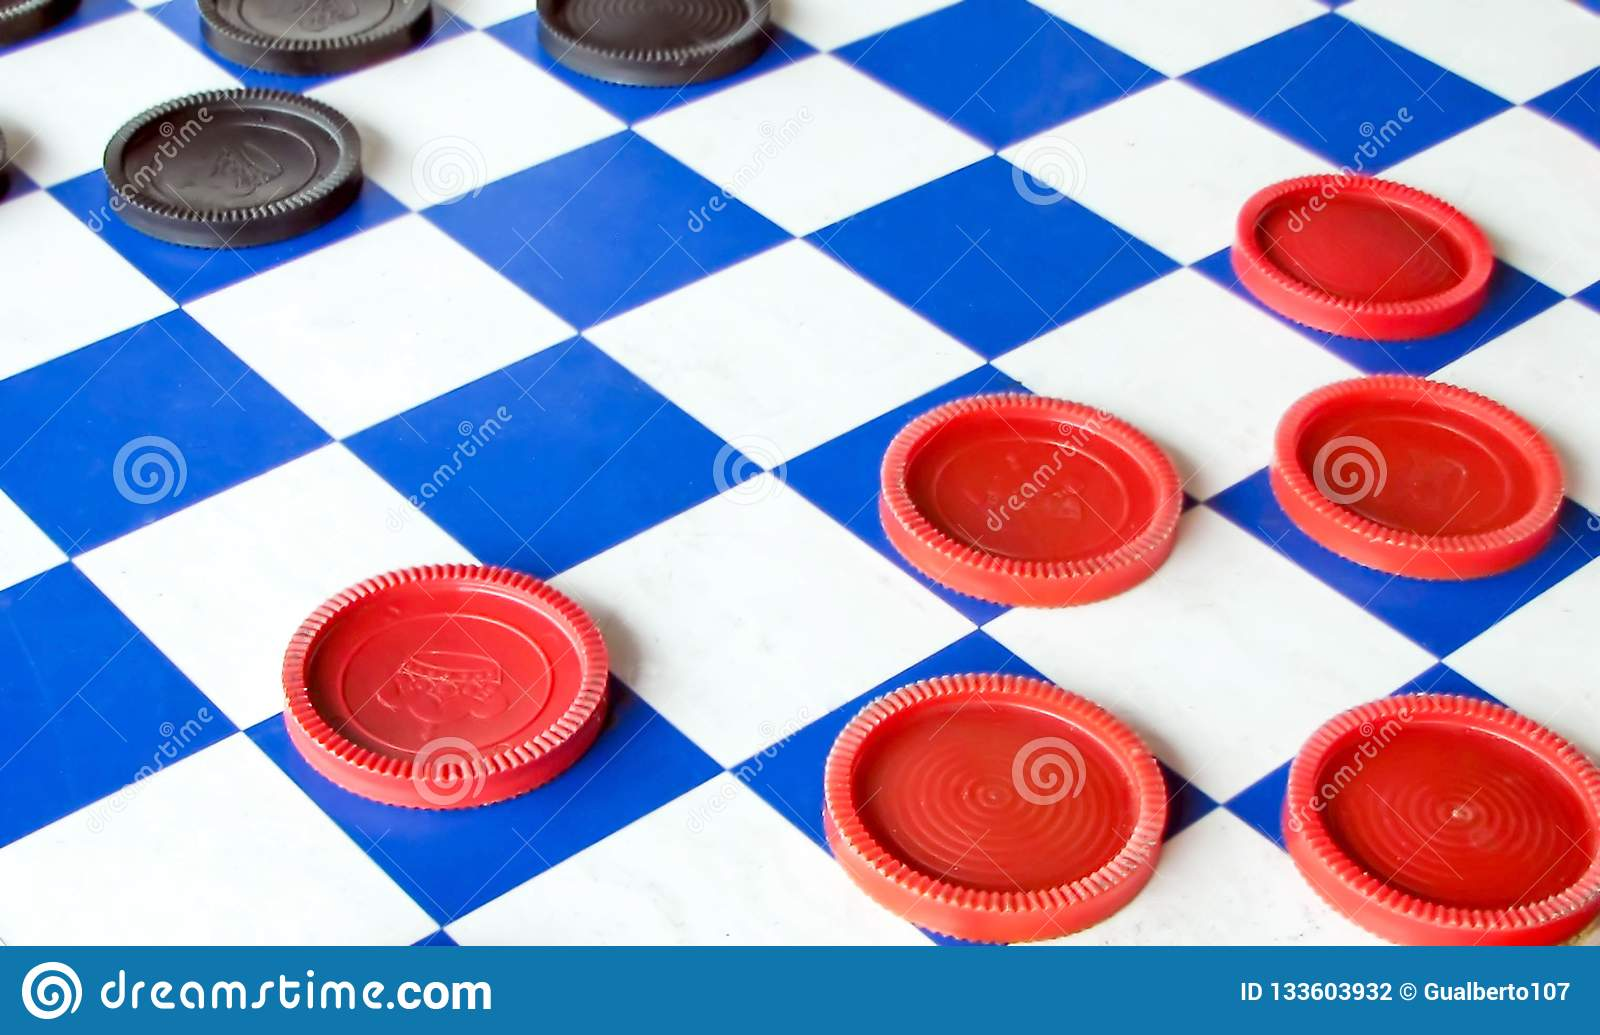 Close up of a checkers board